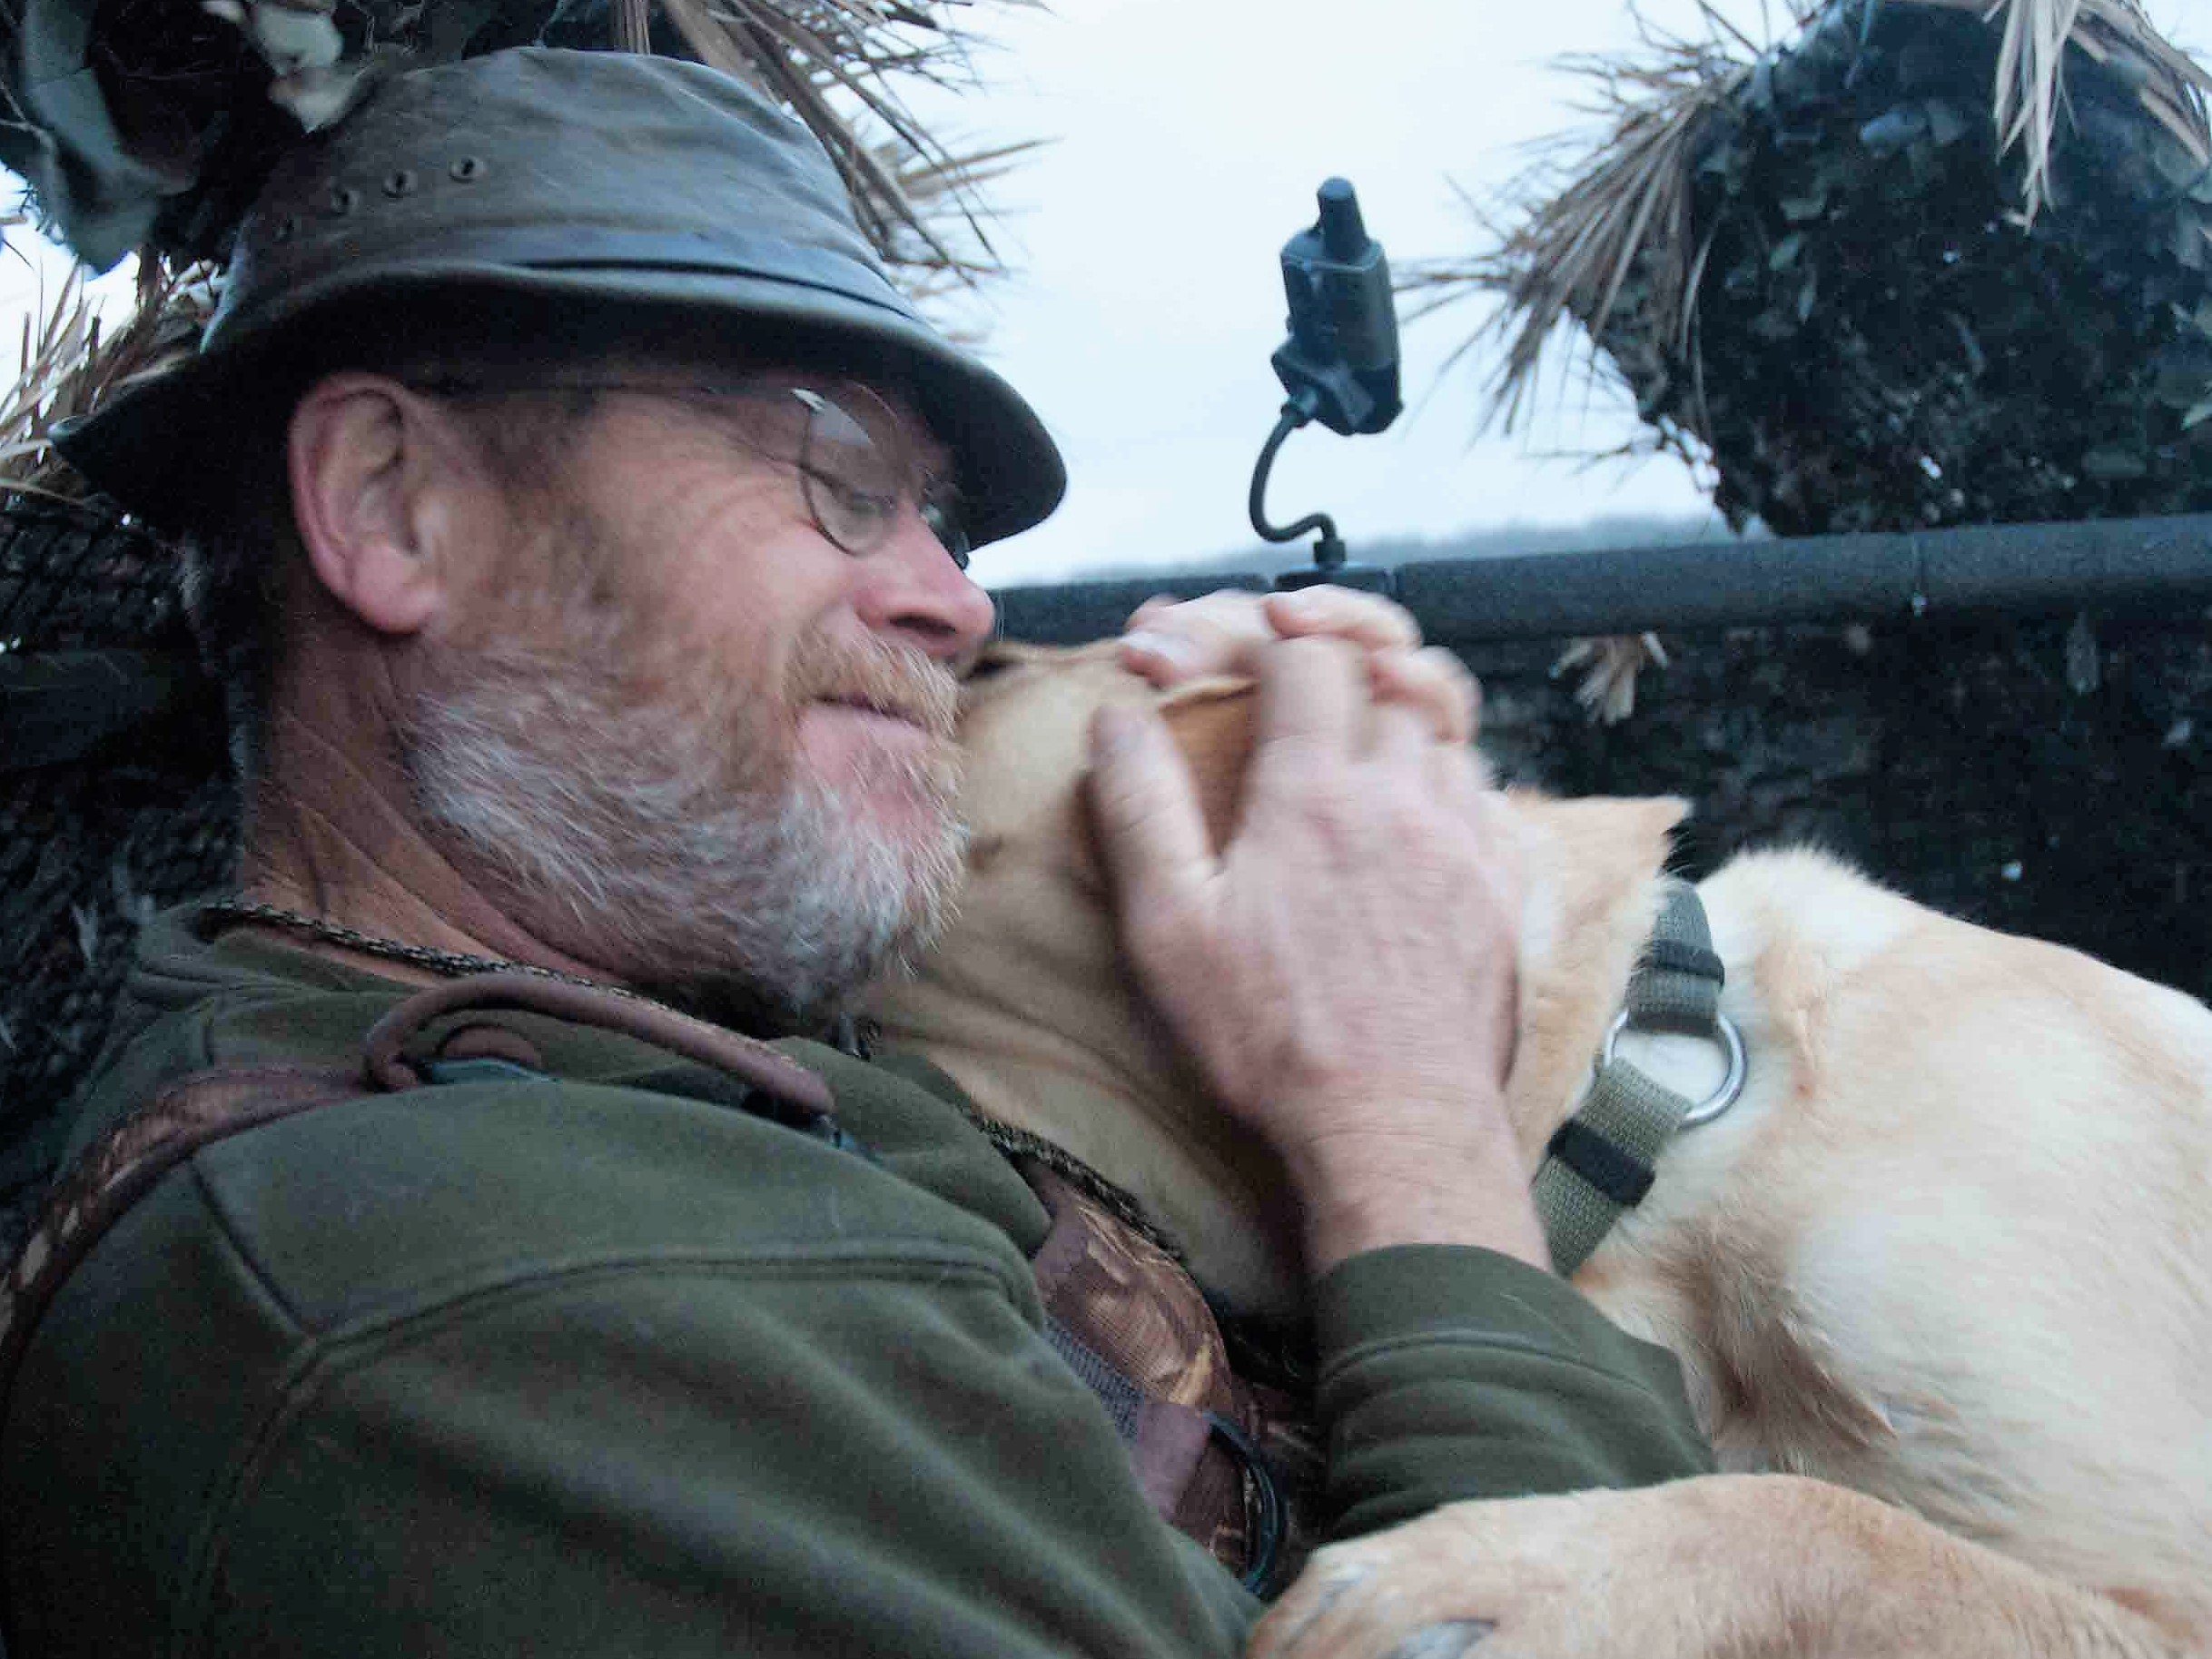 Time spent with friends – two- and four-legged – is one important aspect of hunting that doesn't depend on killing game.